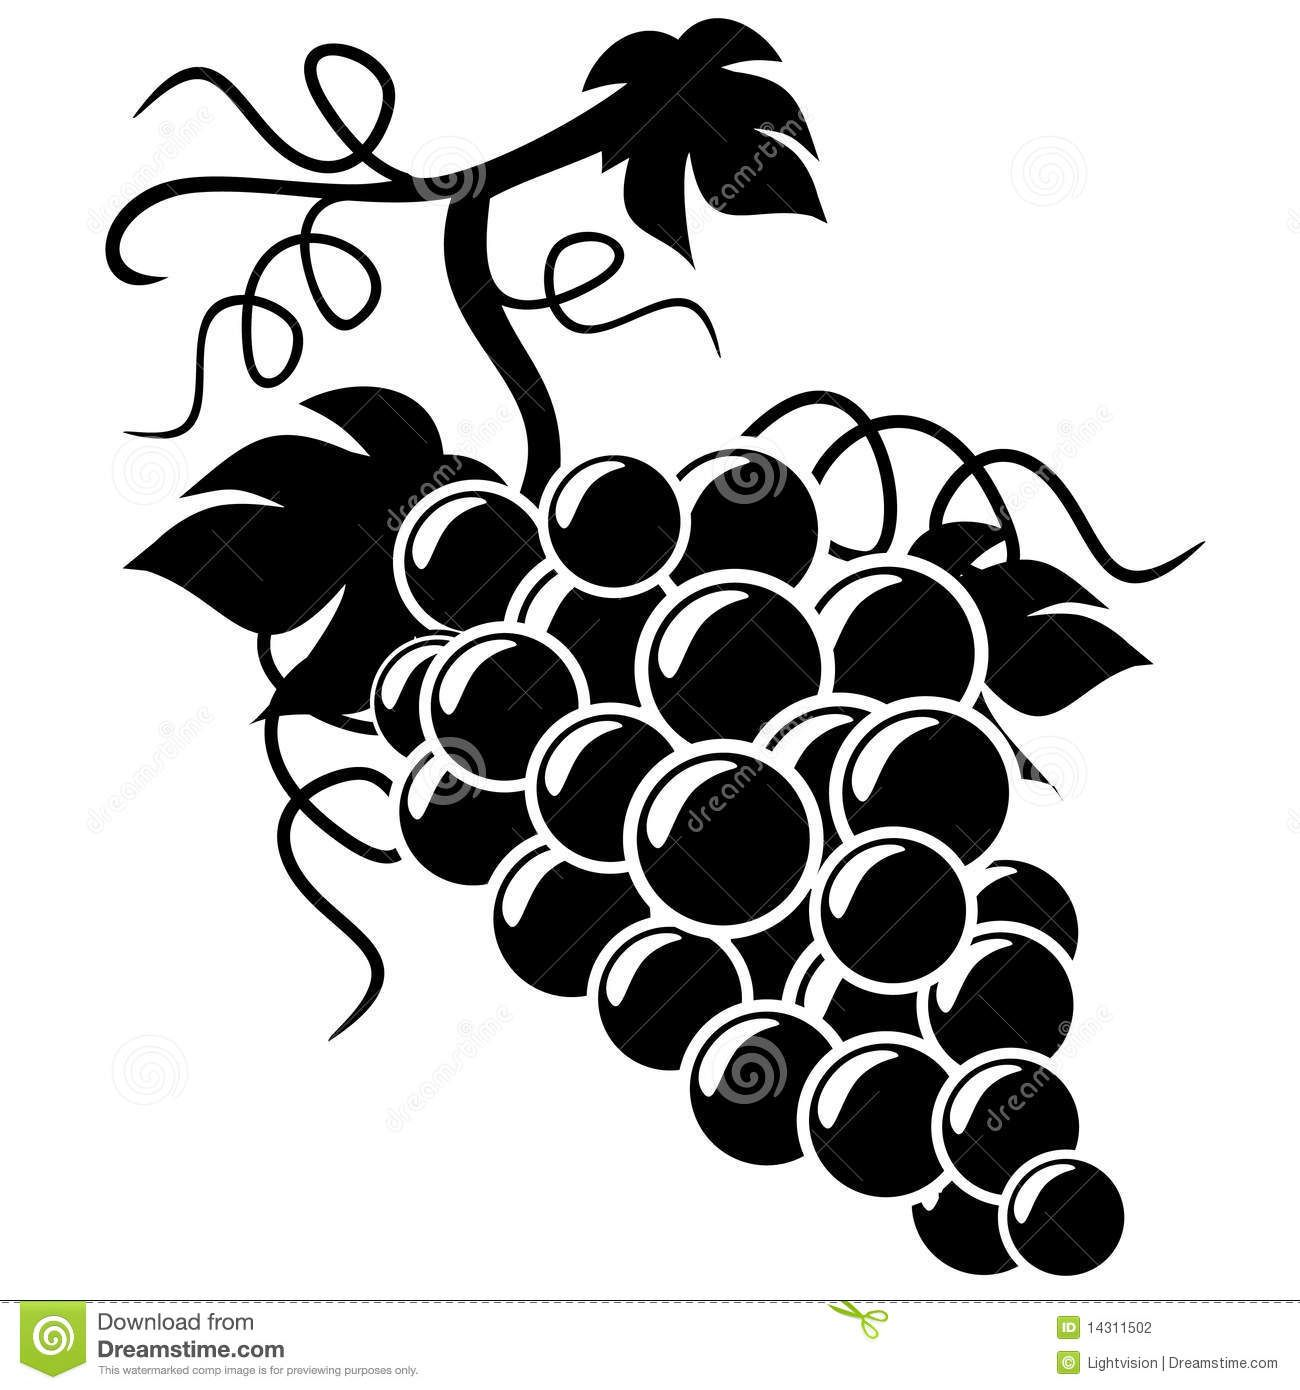 grapes silhouette - Google Search | Art | Pinterest | Silhouettes ...